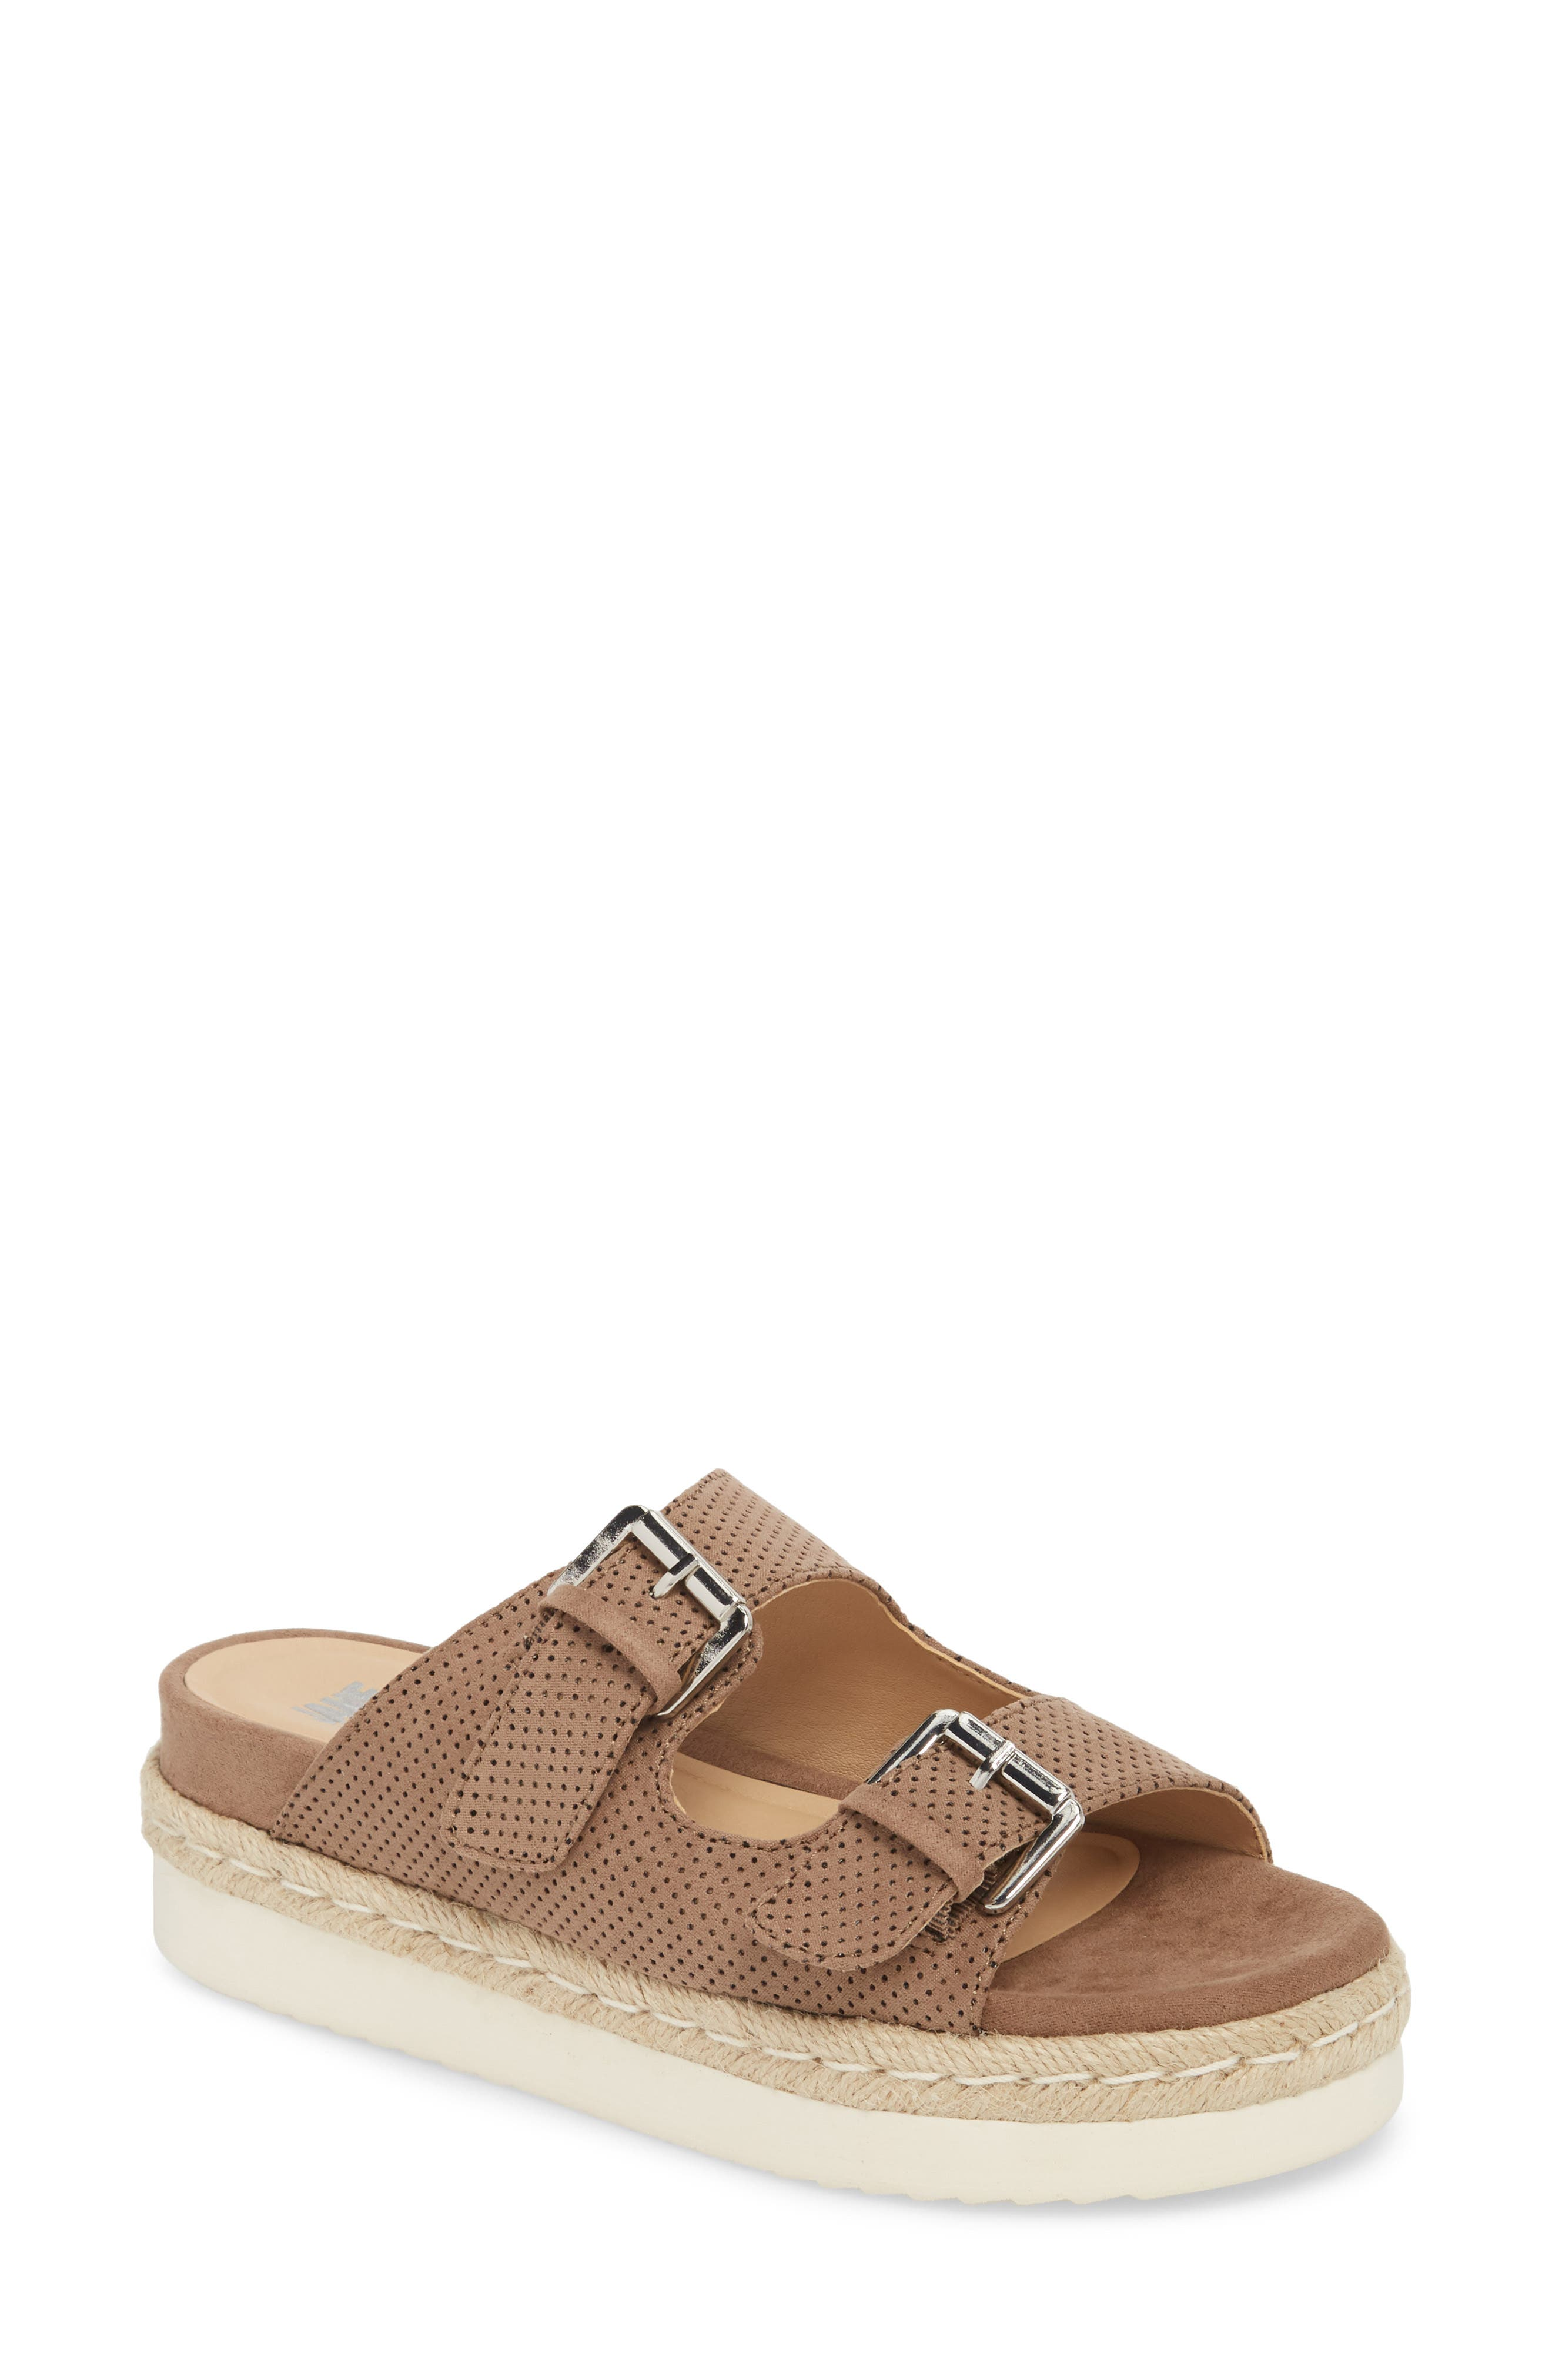 Jane and the Shoe Jojo Two-Buckle Slide Sandal (Women)